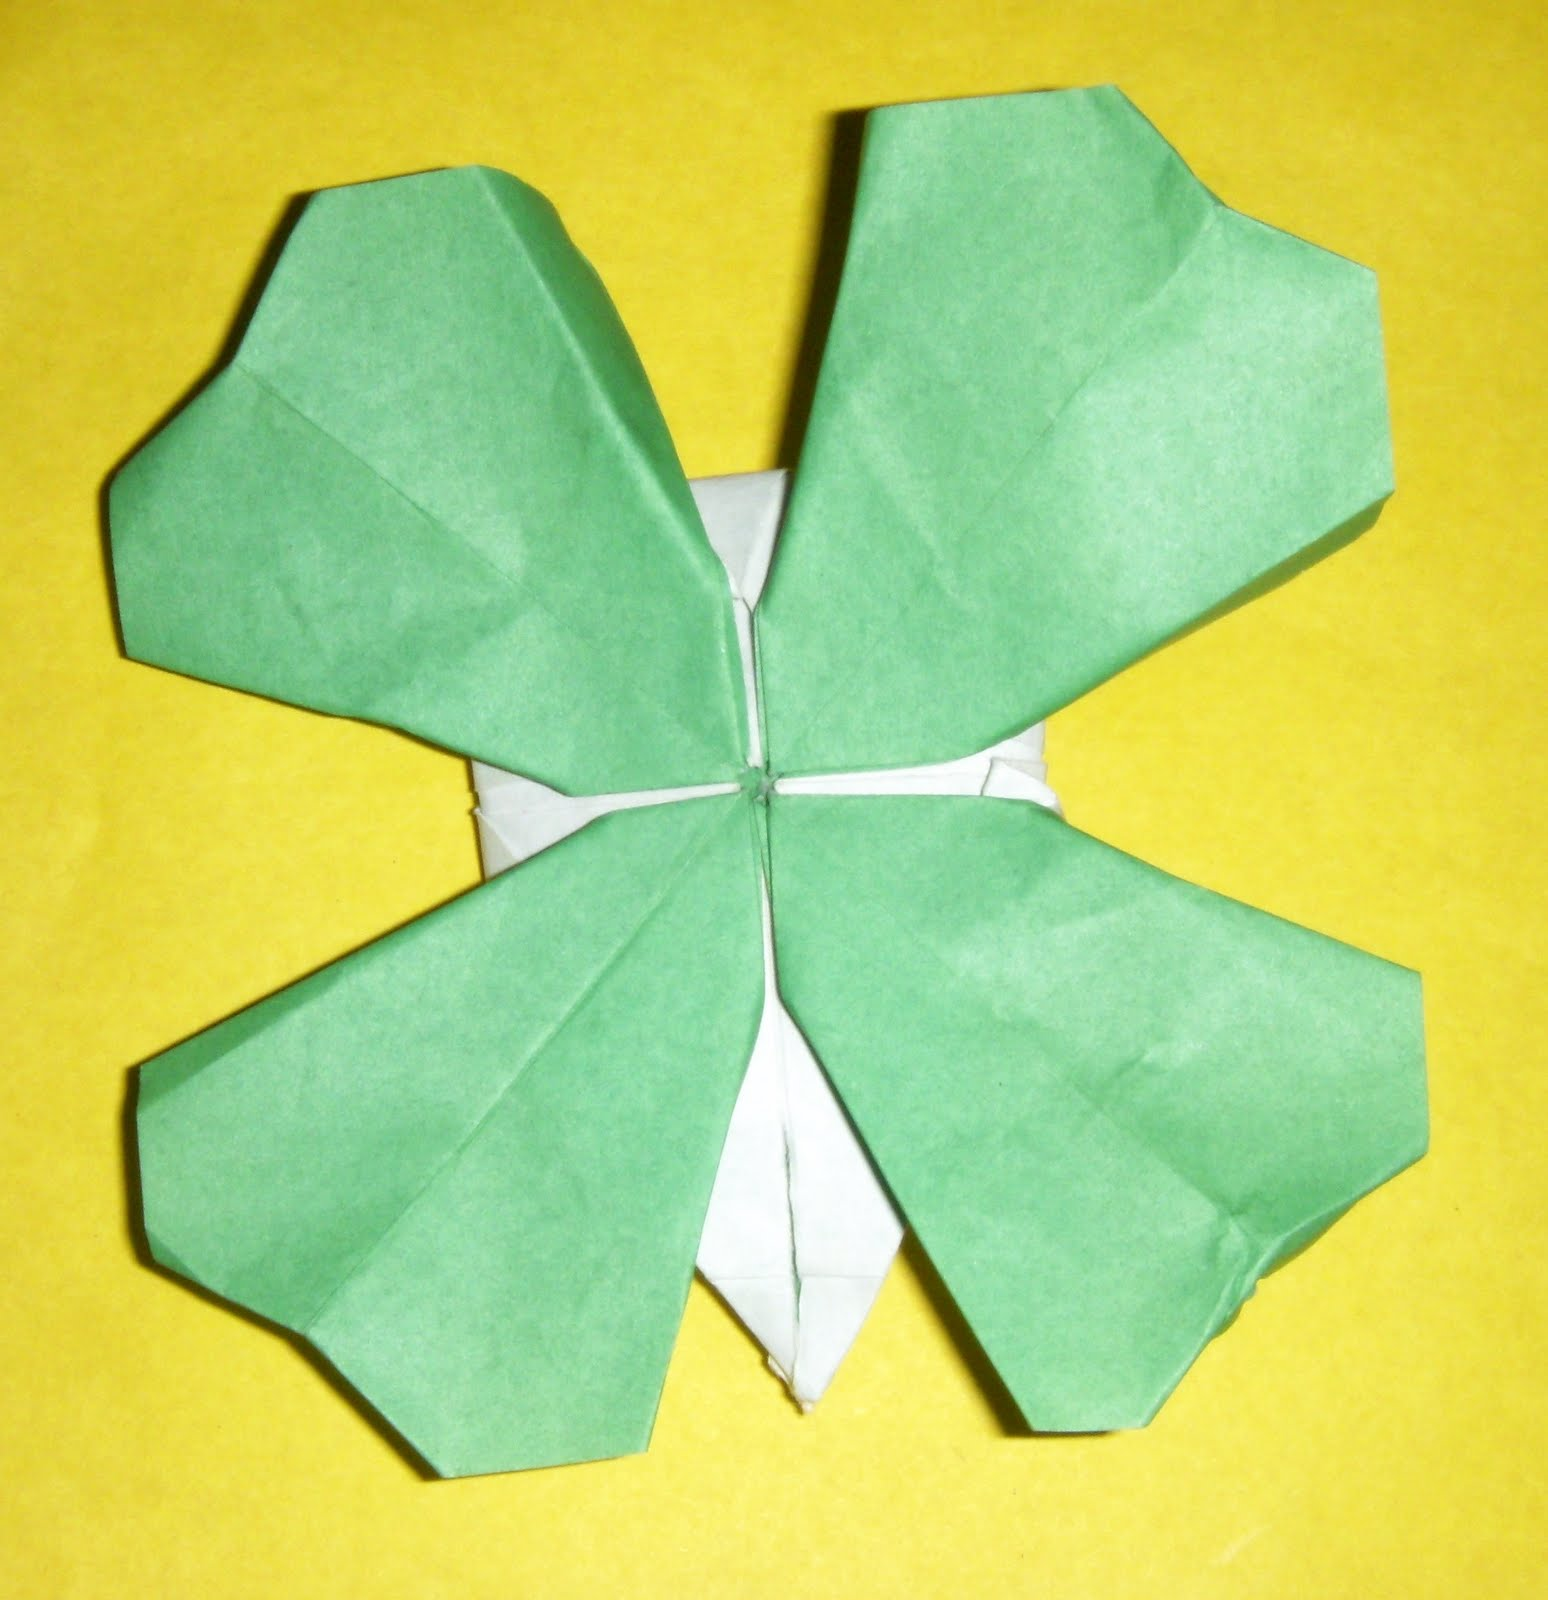 Diagrams Origami Leaf Modern Design Of Wiring Diagram Complex Dragon Instructions How To Make Four Clover Star Easy